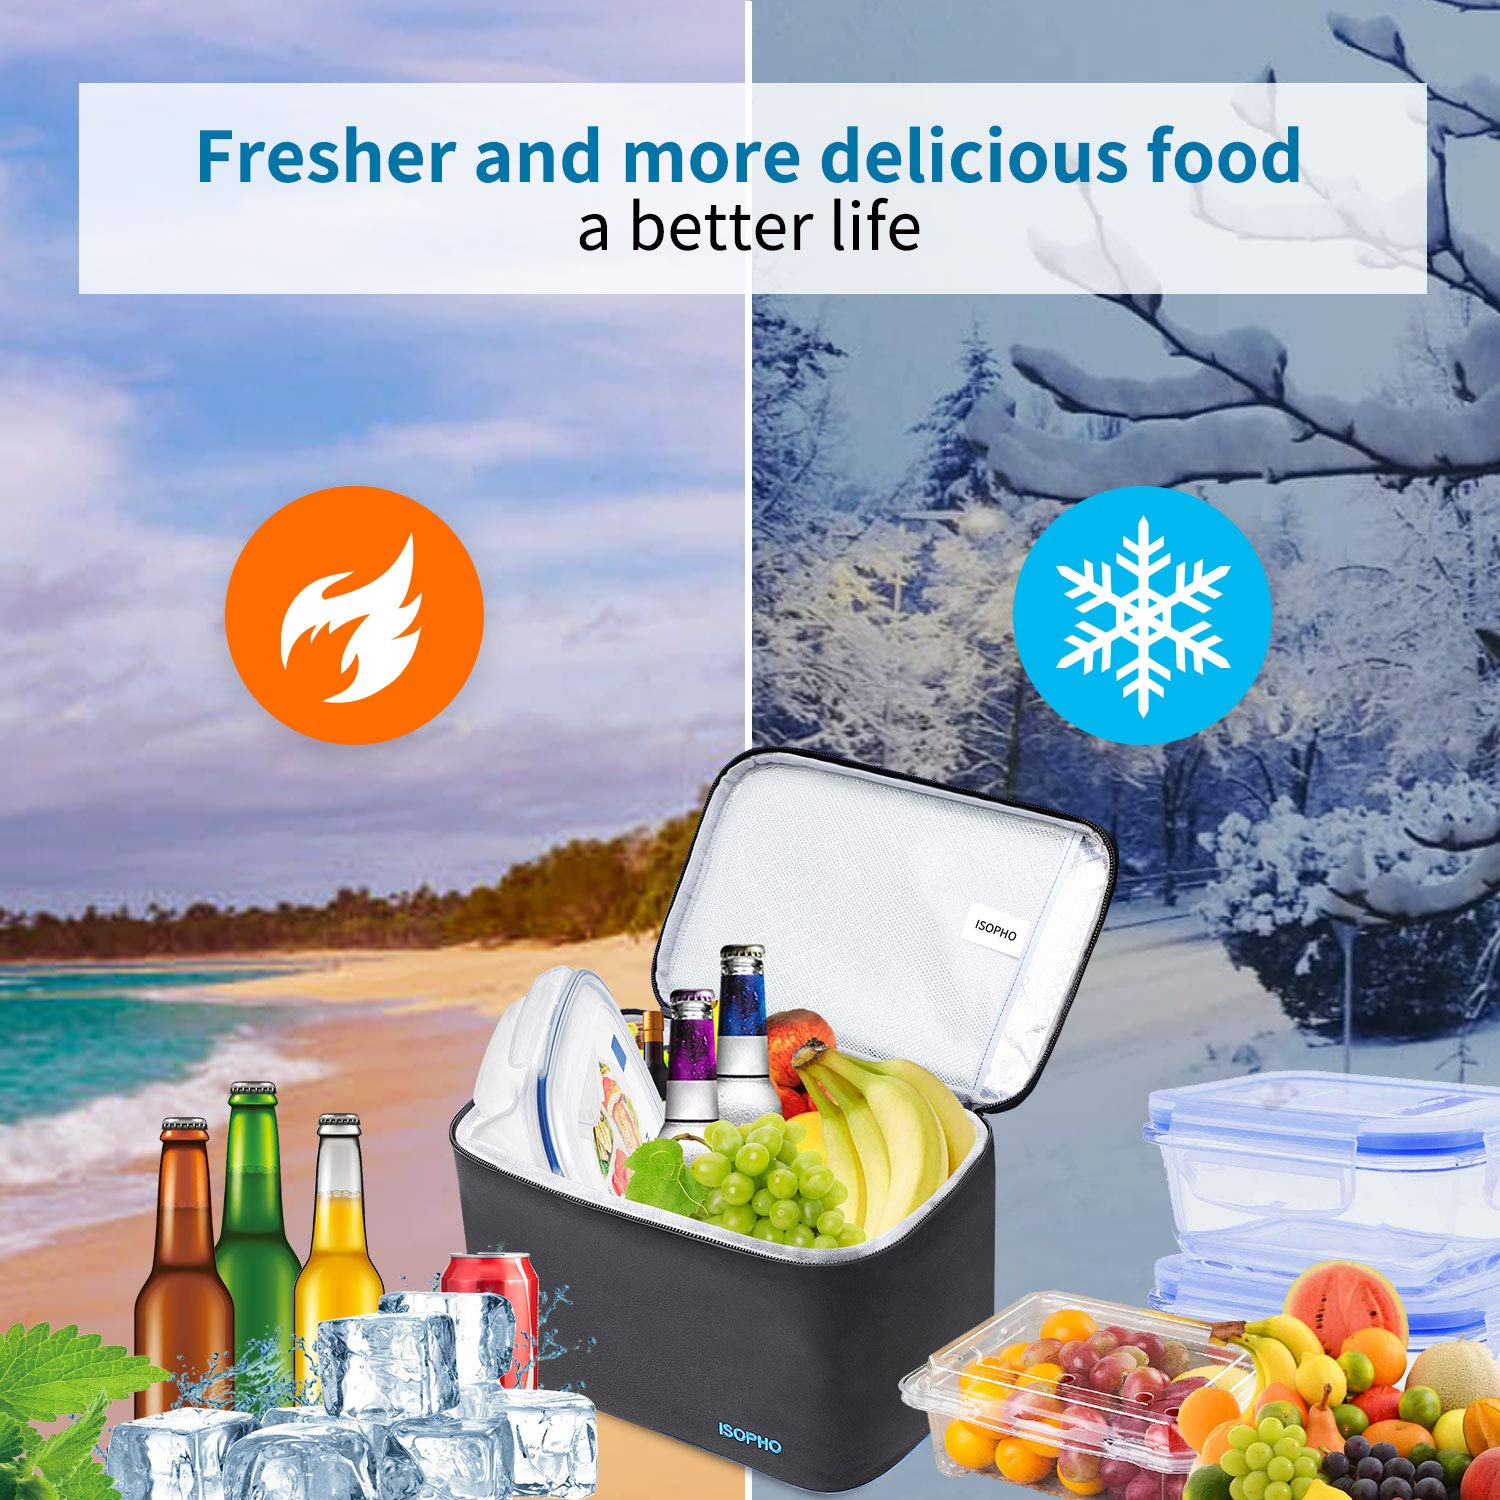 Cool Lunch Bag ISOPHO Picnic Cool Bag 7L Lunch Box for Adults/Men/Women/Kids, Leakproof Insulated Lunch Bag for Work, School, Camping, Black and Light Portable Adjustable Shoulder Strap